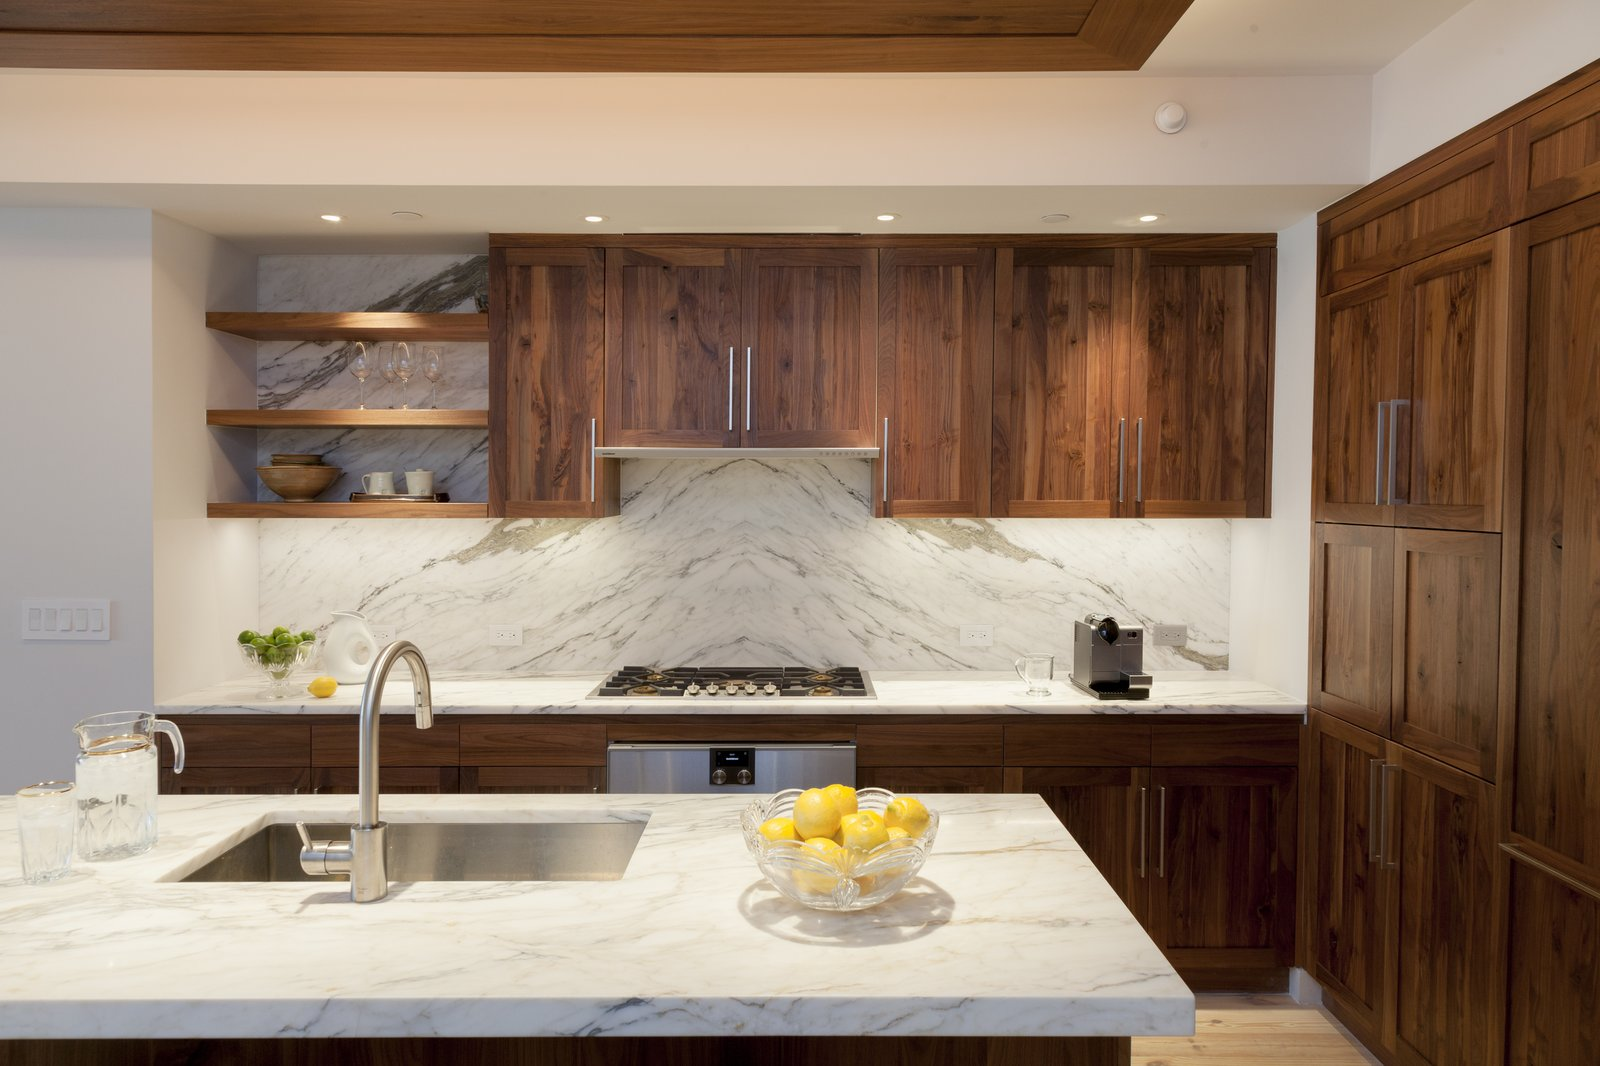 Kitchen, Marble, Wood, Stone Slab, Ceiling, Pendant, Light Hardwood, Accent, Recessed, Refrigerator, Wall Oven, Cooktops, Range, Range Hood, Wine Cooler, Ice Maker, Dishwasher, Microwave, and Undermount Walnut and book-matched  Calcutta kitchen  Dwell's Favorite Kitchen Wine Cooler Ice Maker Undermount Photos from Pierhouse At Brooklyn Bridge Park Condo